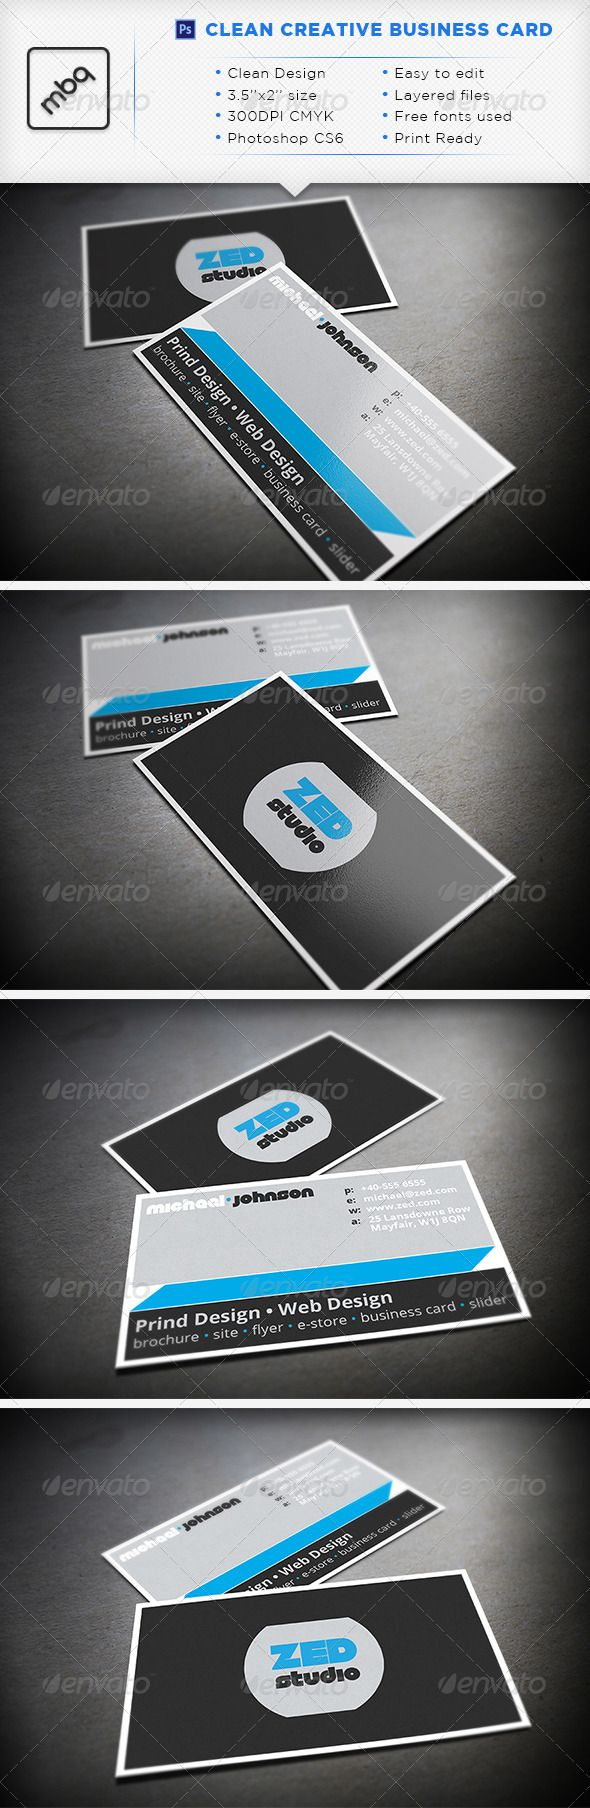 88 best print templates images on pinterest business cards name clean creative business card graphicriver clean creative business card fully editable d files reheart Images